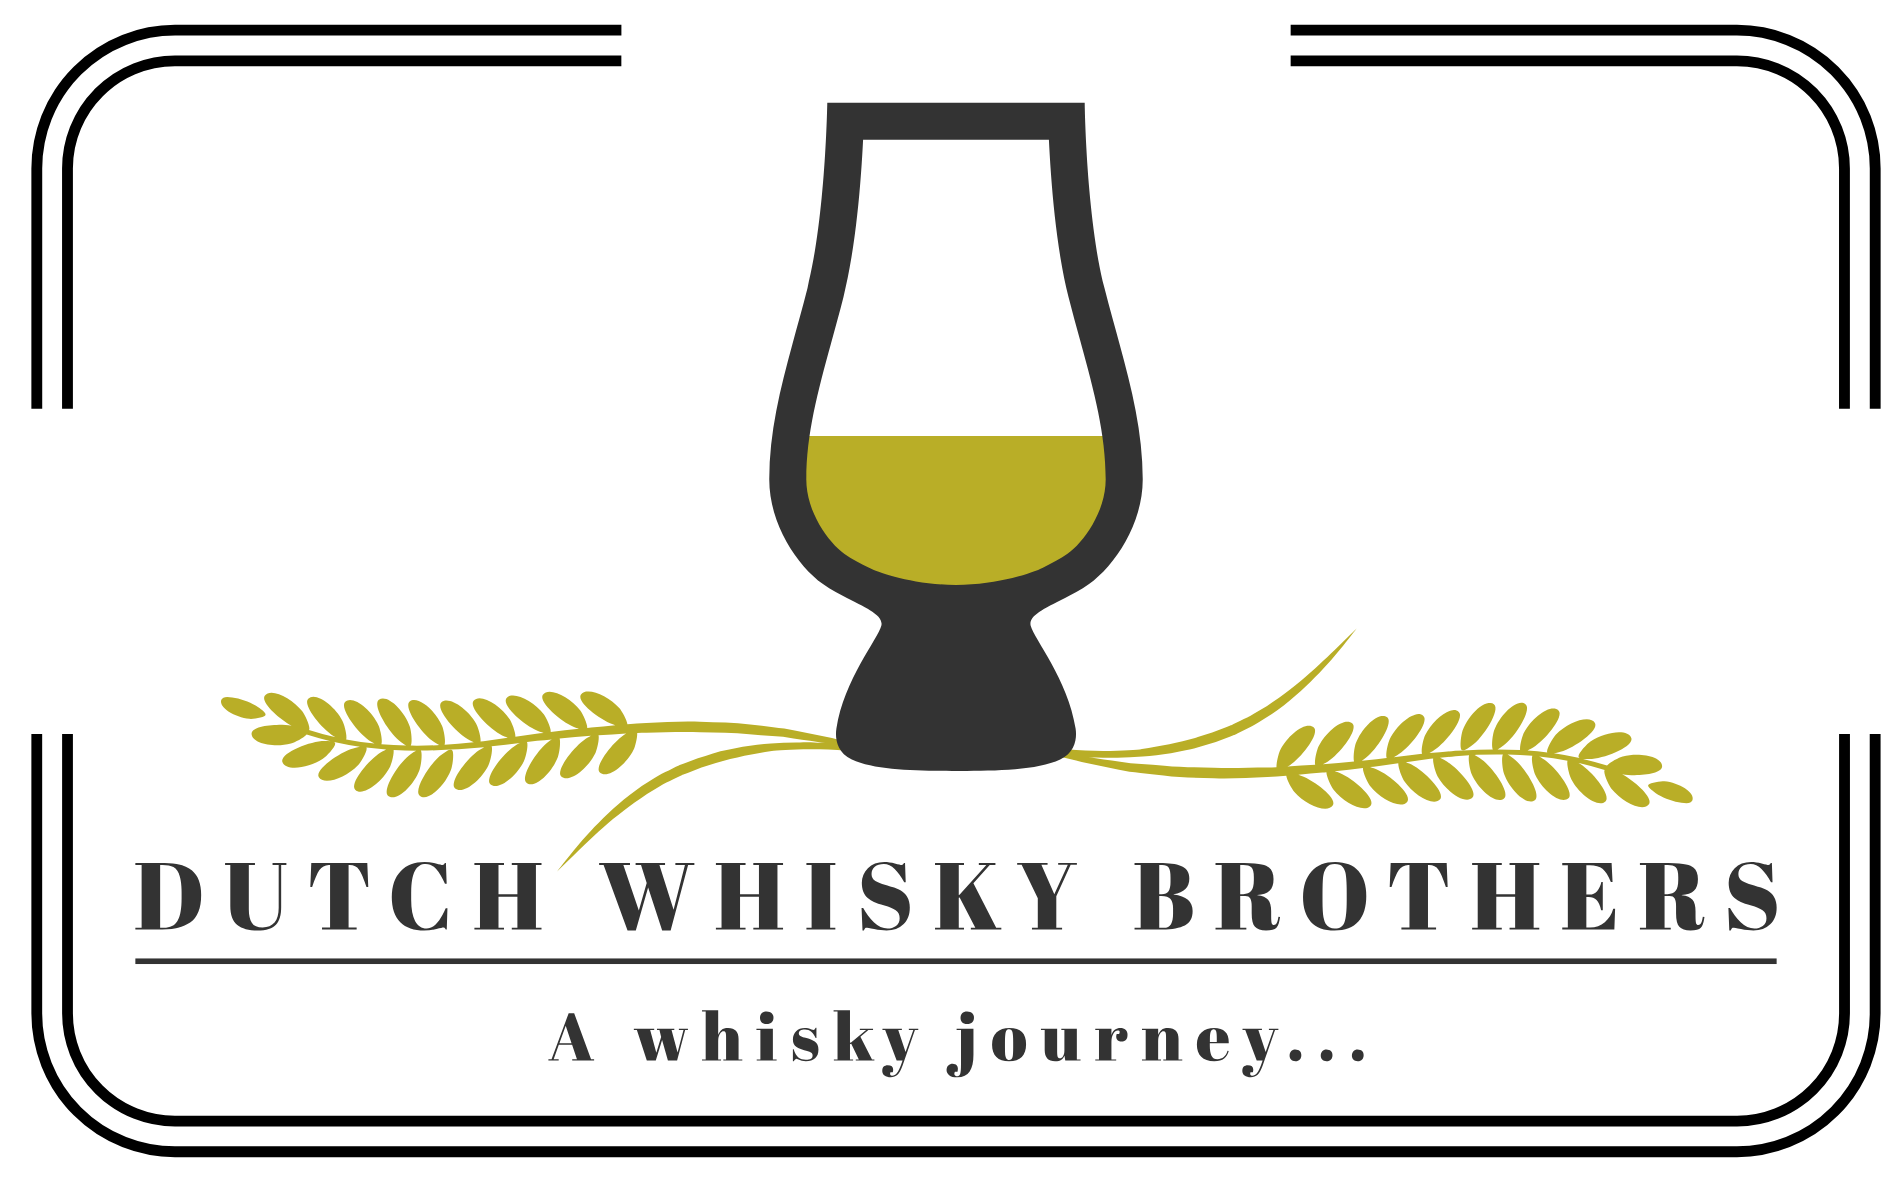 Dutch Whisky Brothers